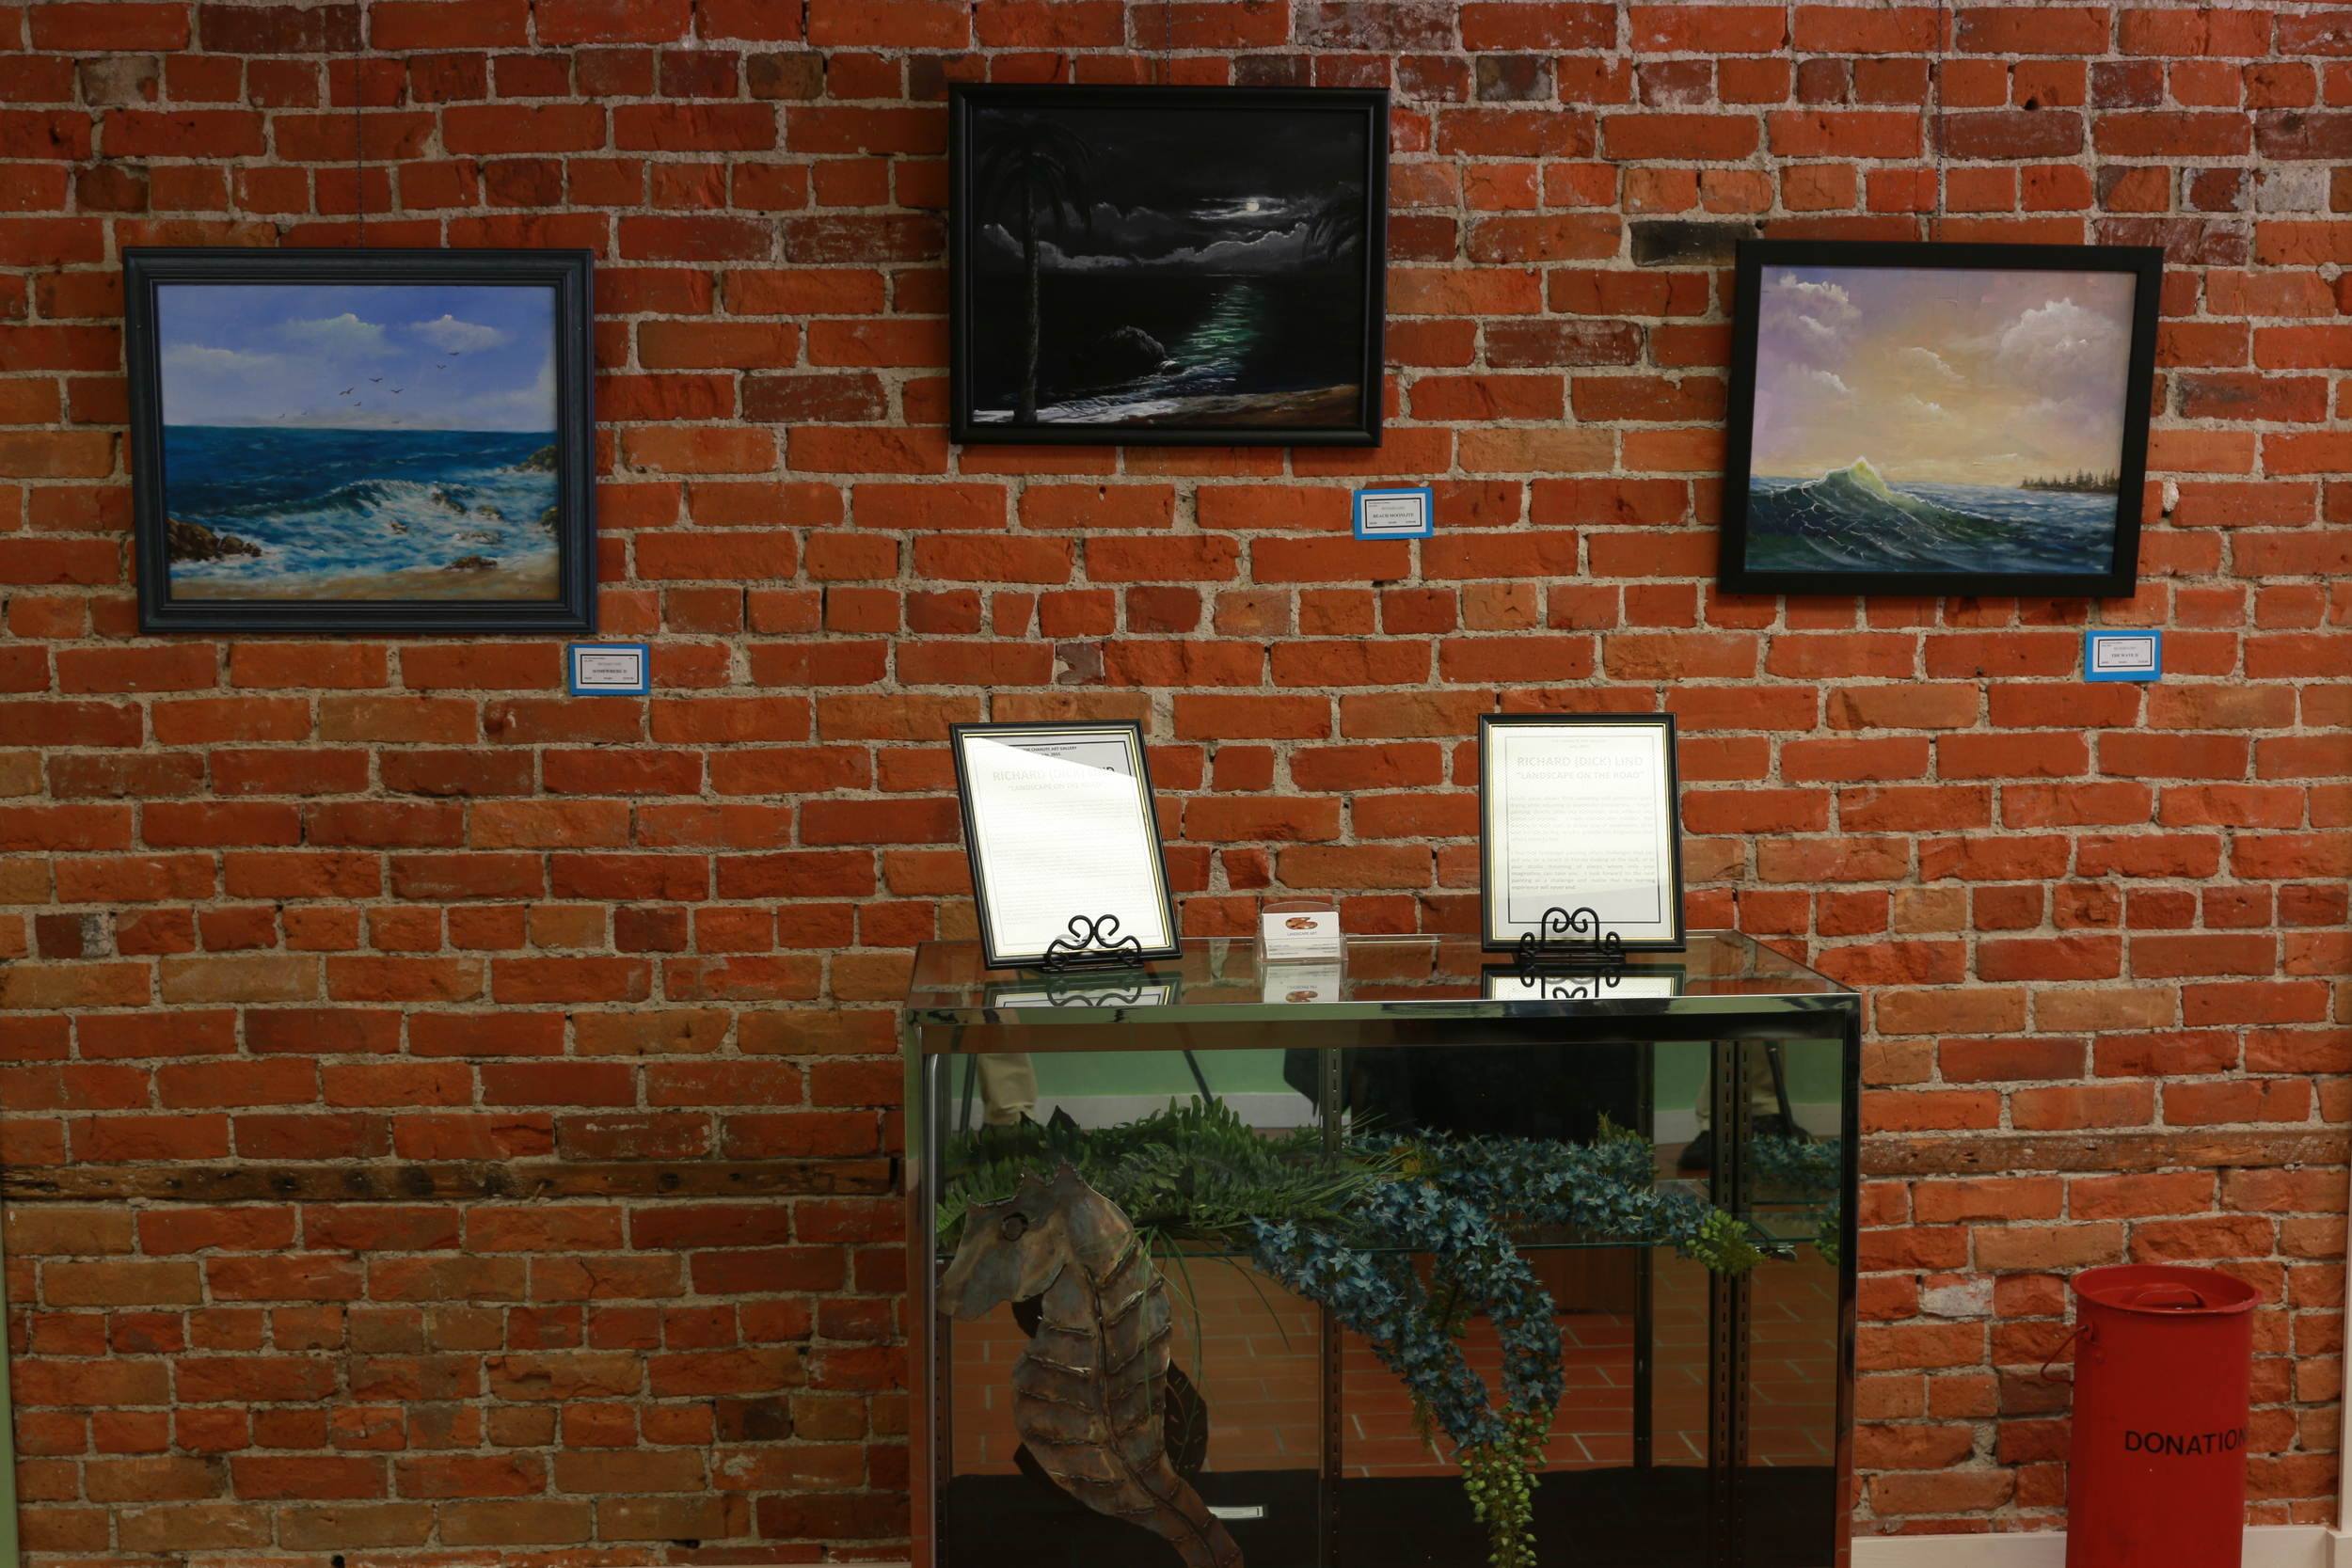 Some of Richard's work currently on display at the gallery